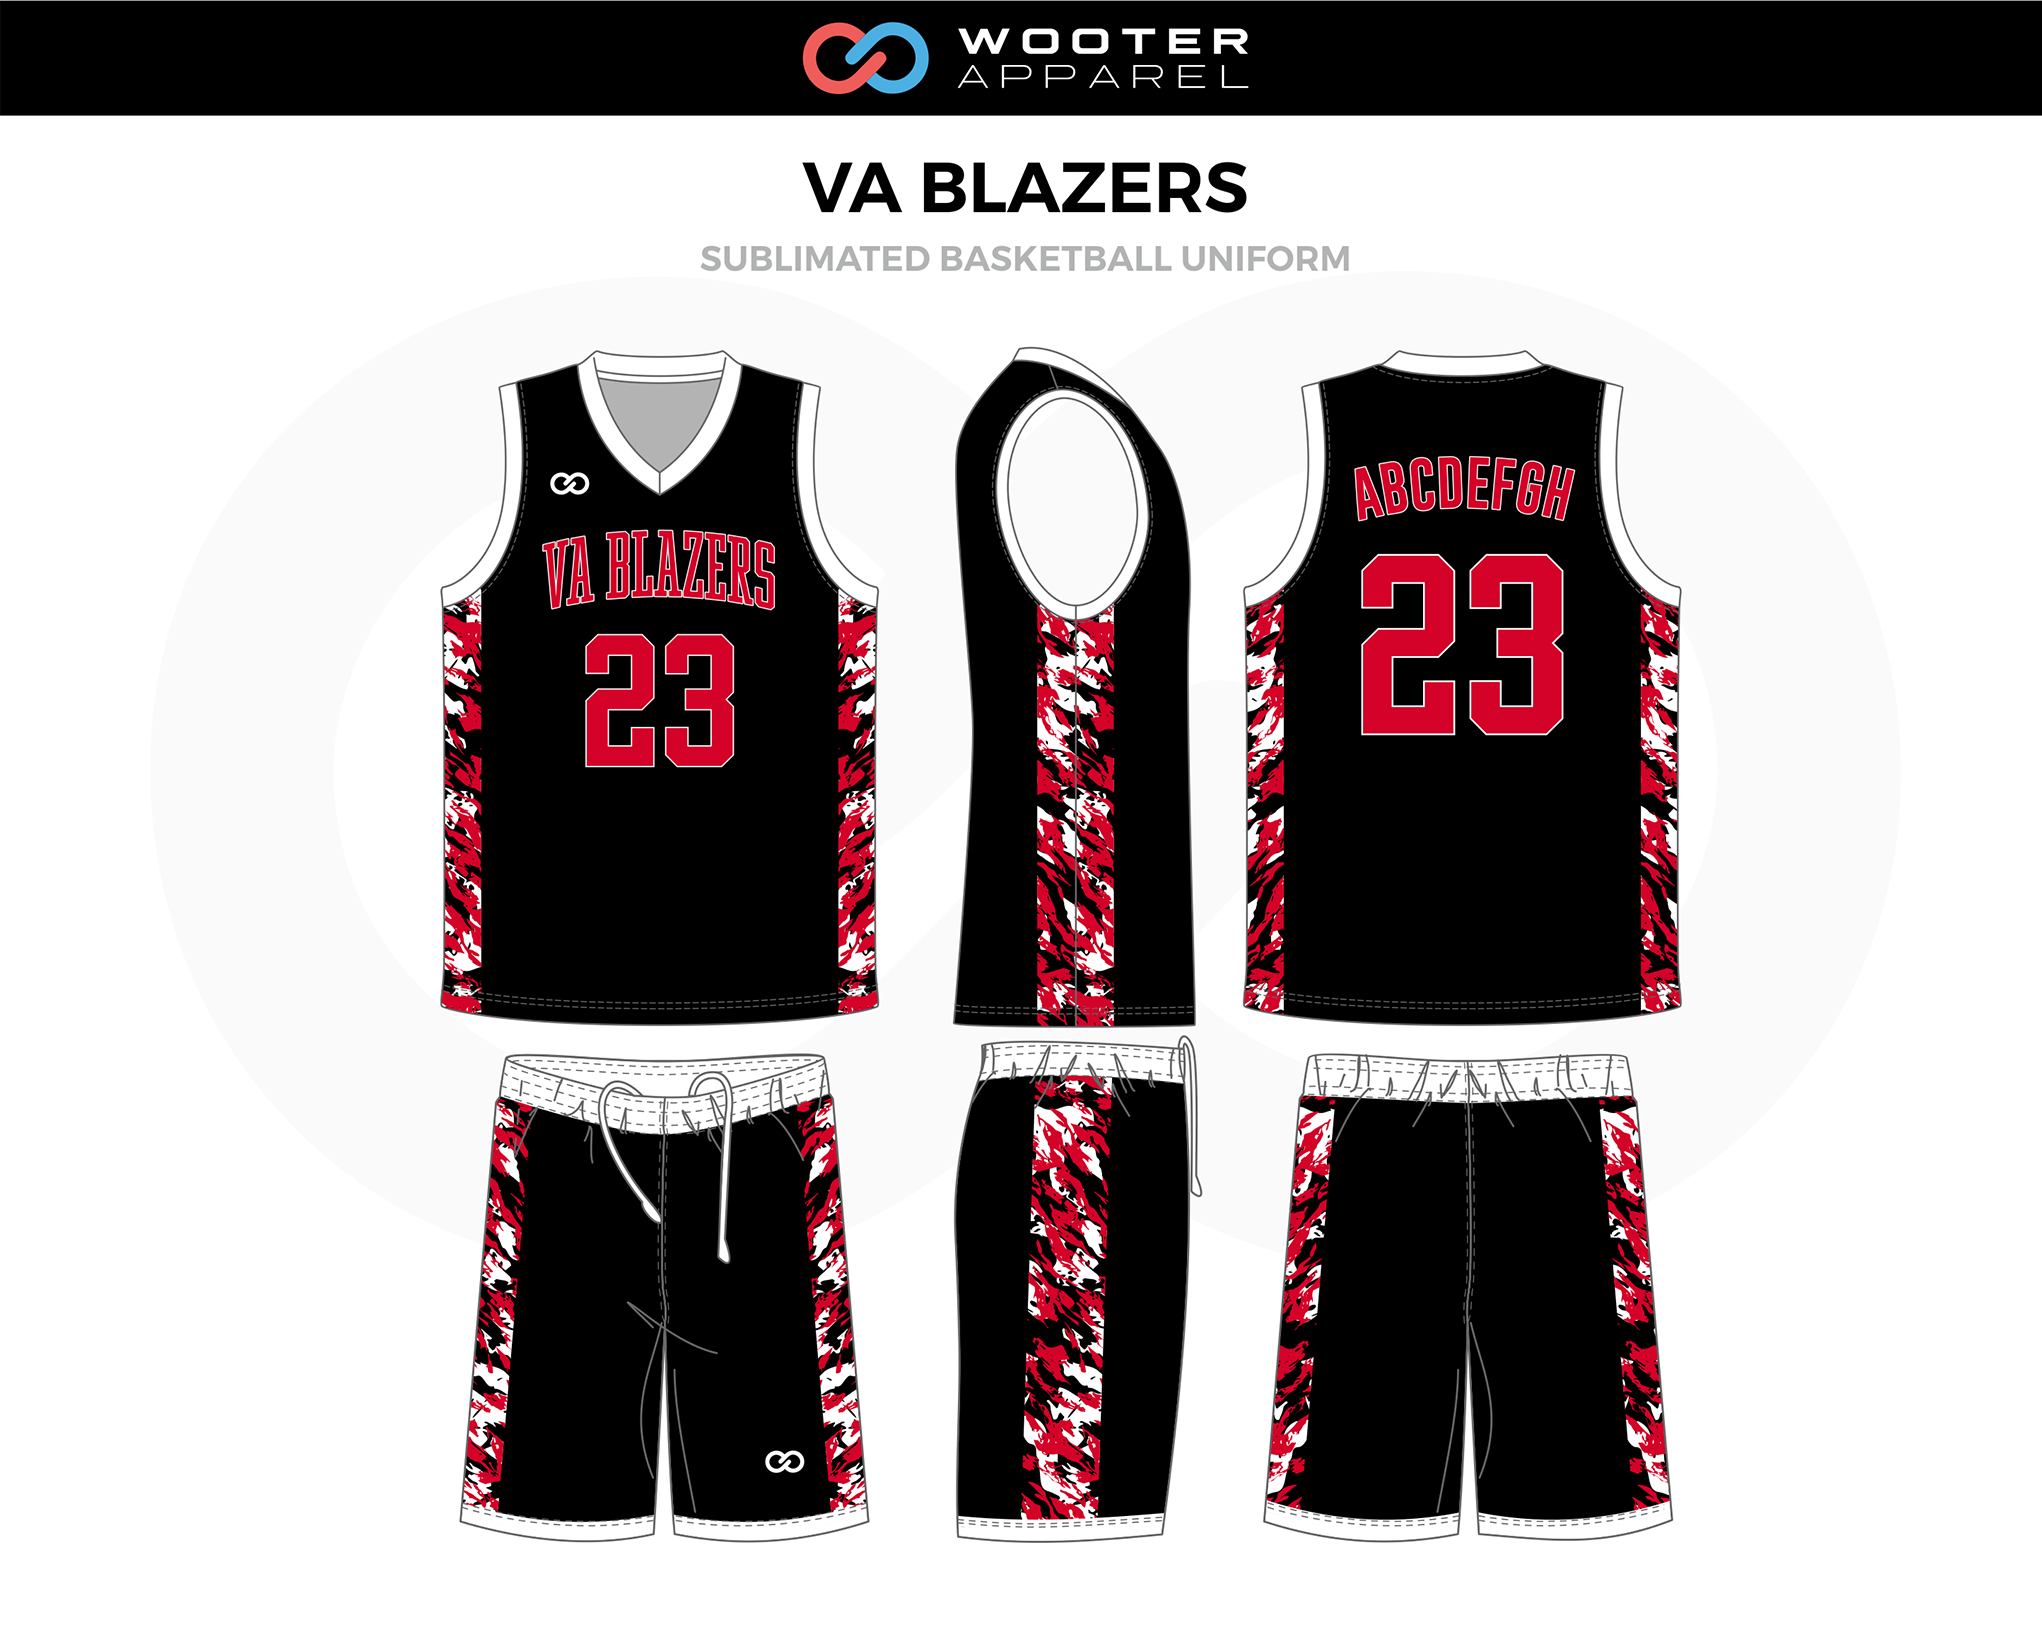 VA BLAZERS Black Red White Basketball Uniform, Jersey and Shorts